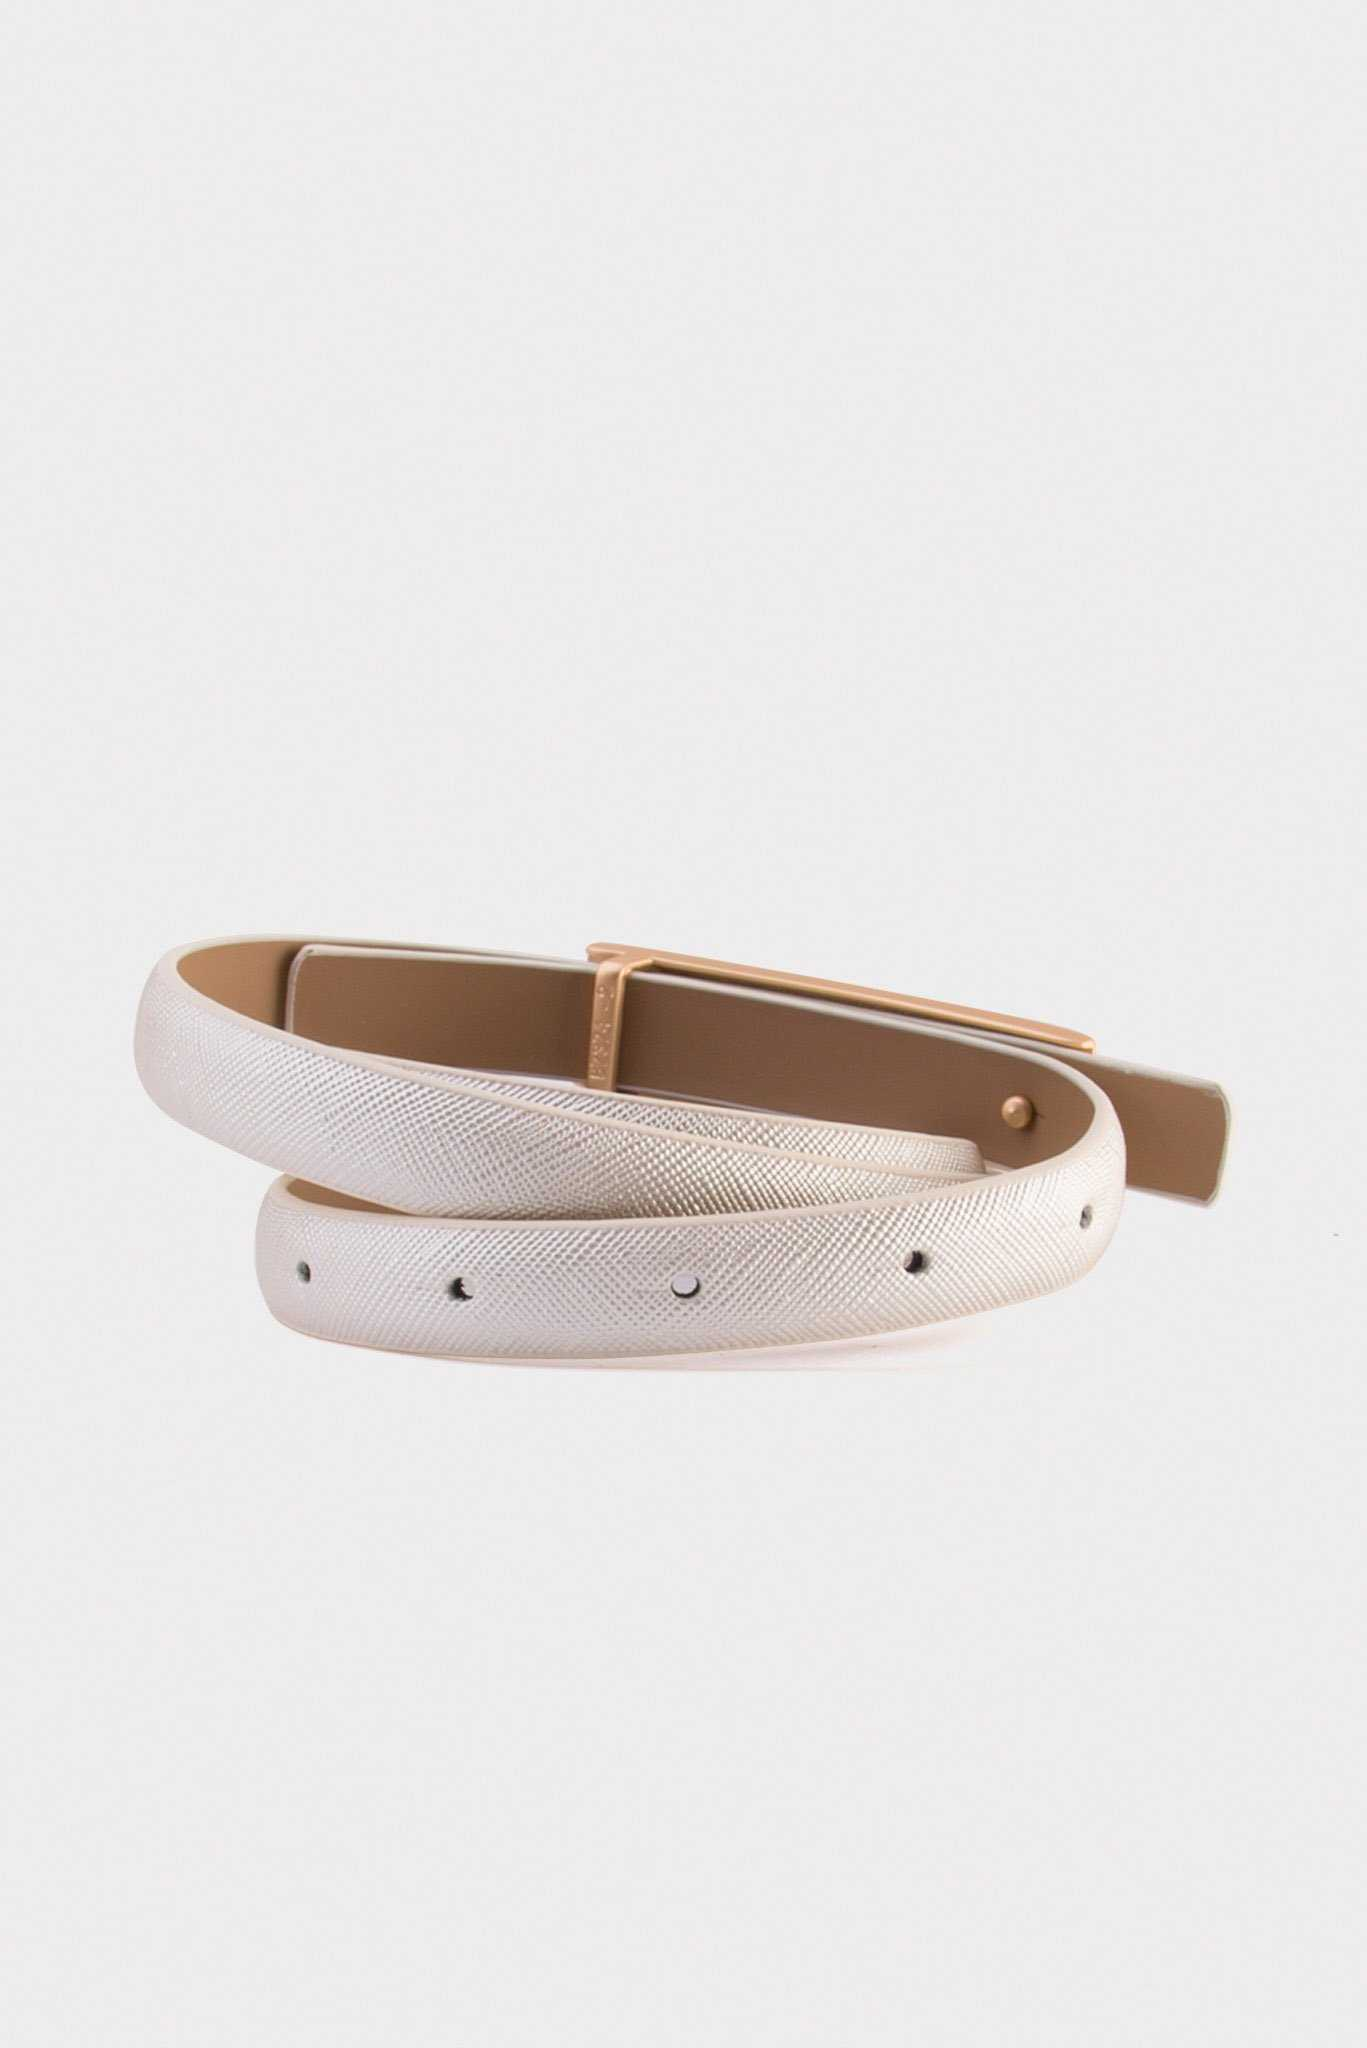 Narrow Belt - White | Raw Orange